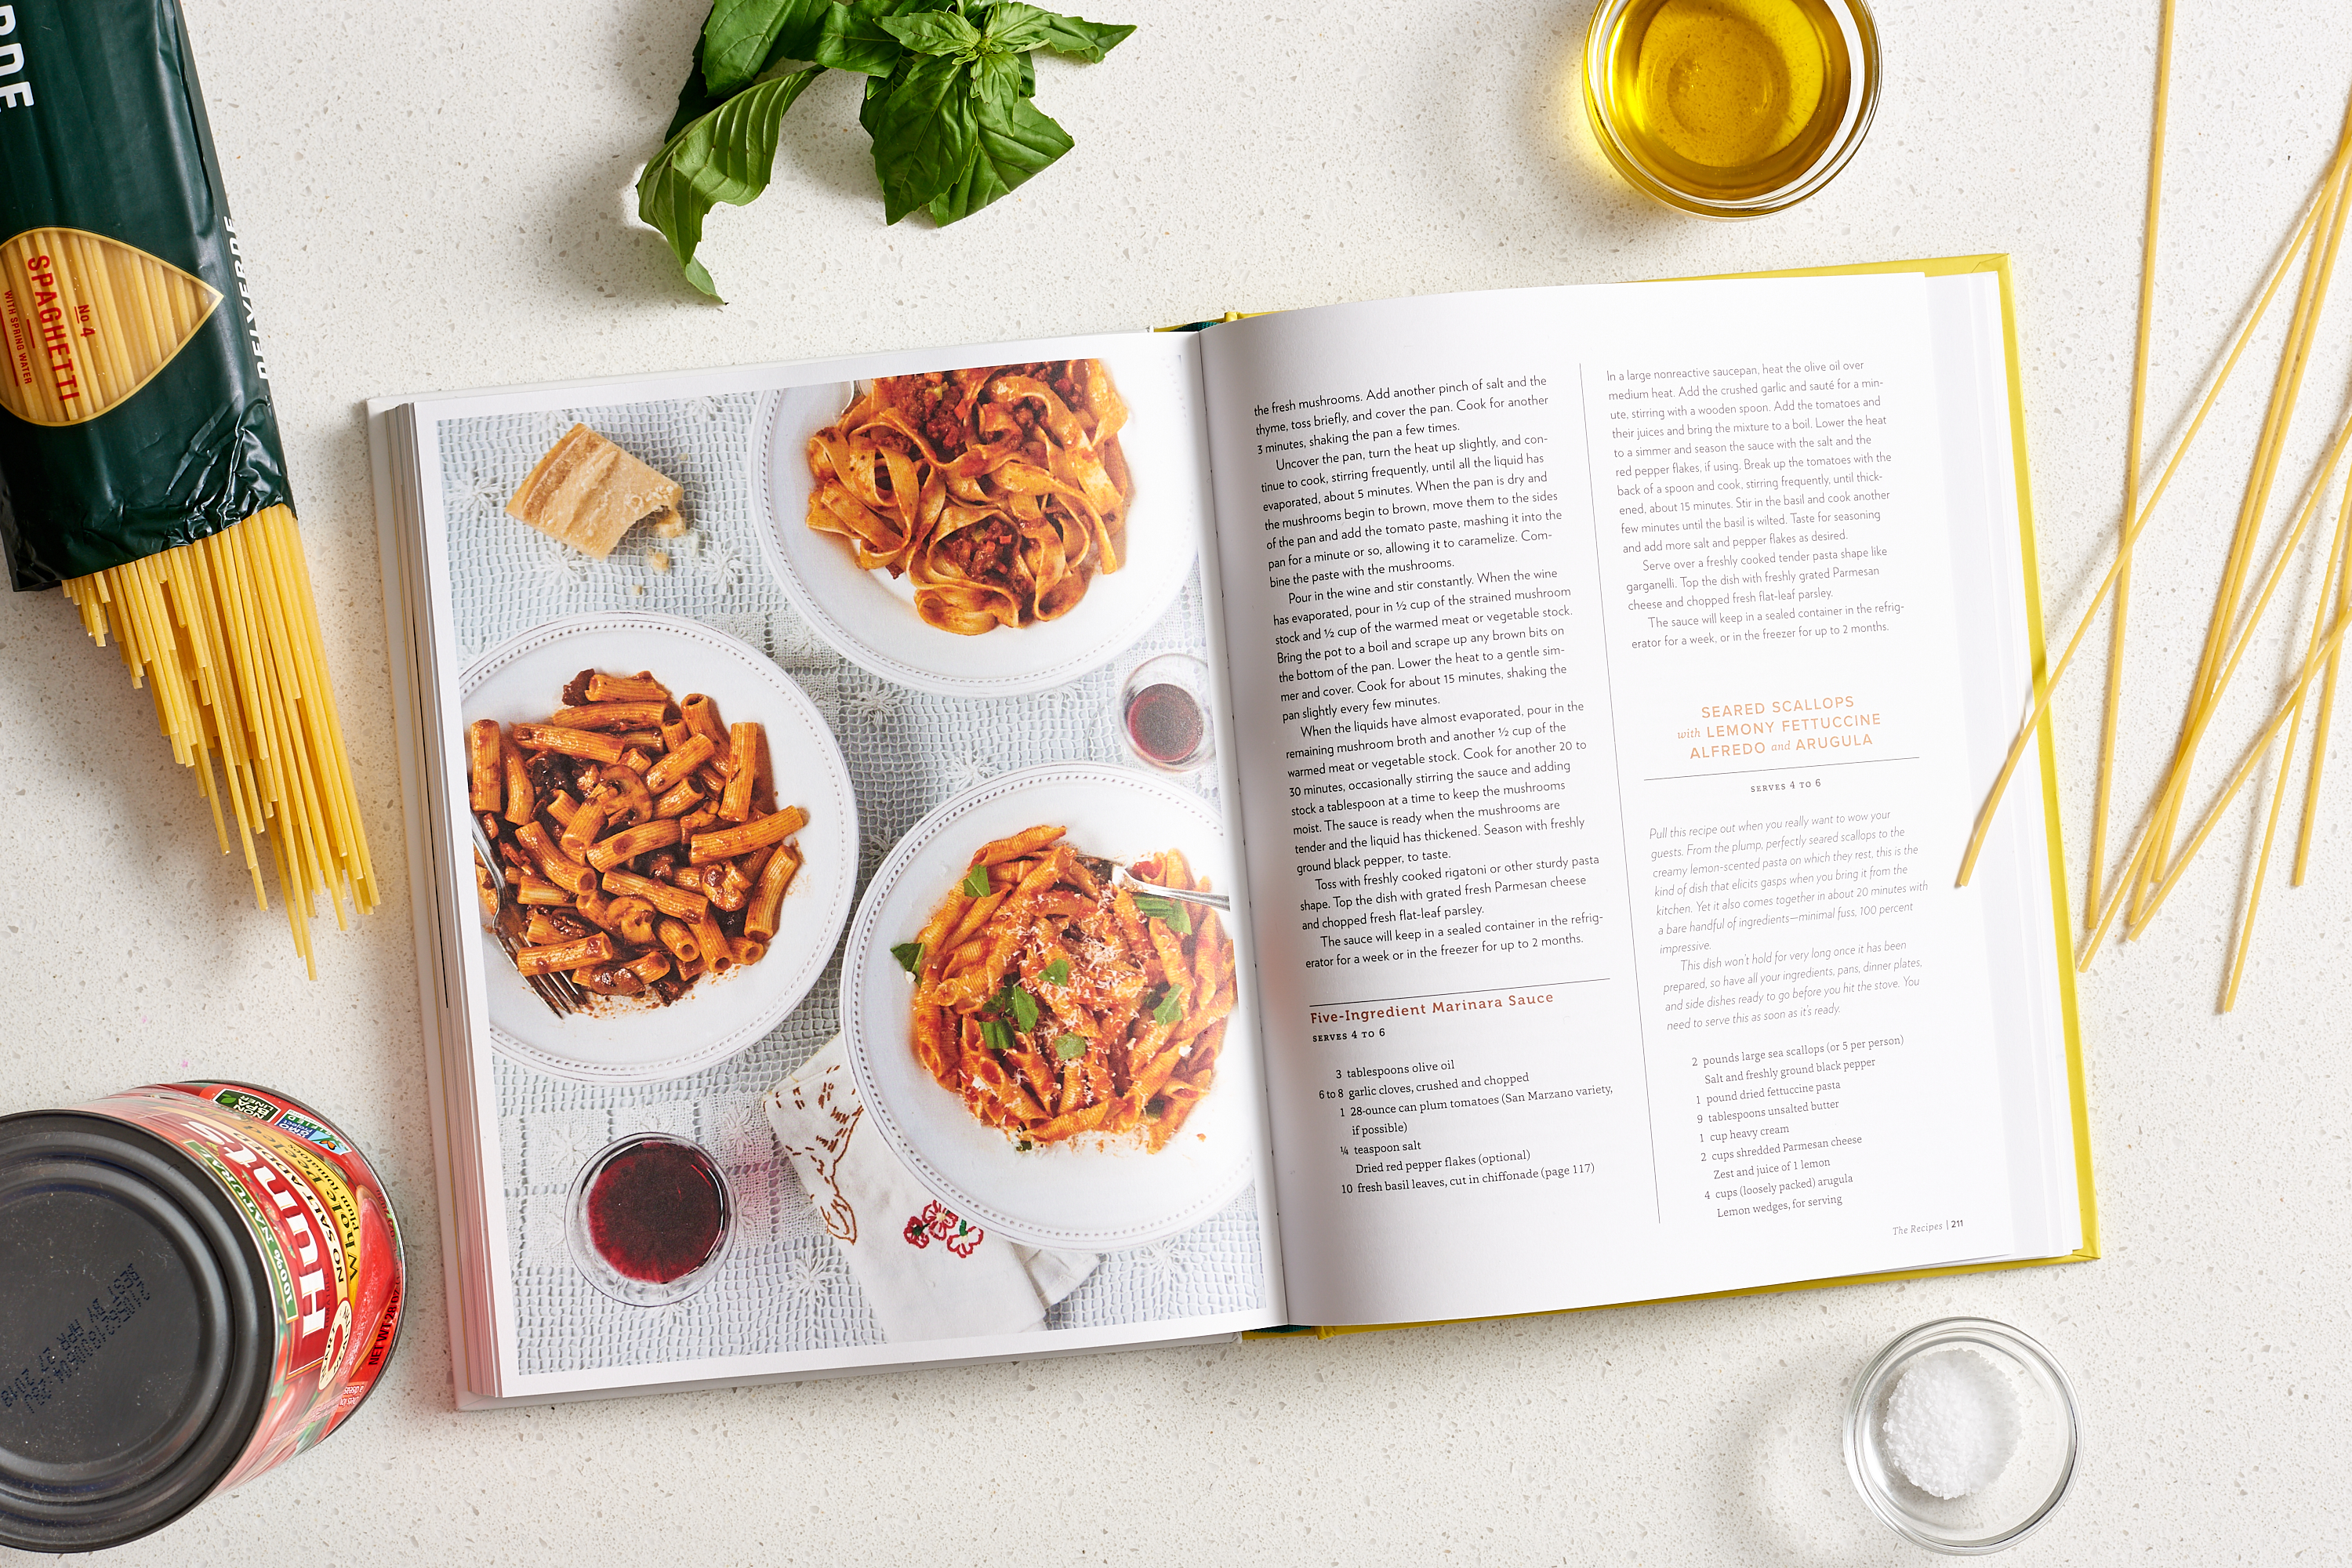 How To Rescue Your Favorite Cookbook from Food Spills | Kitchn